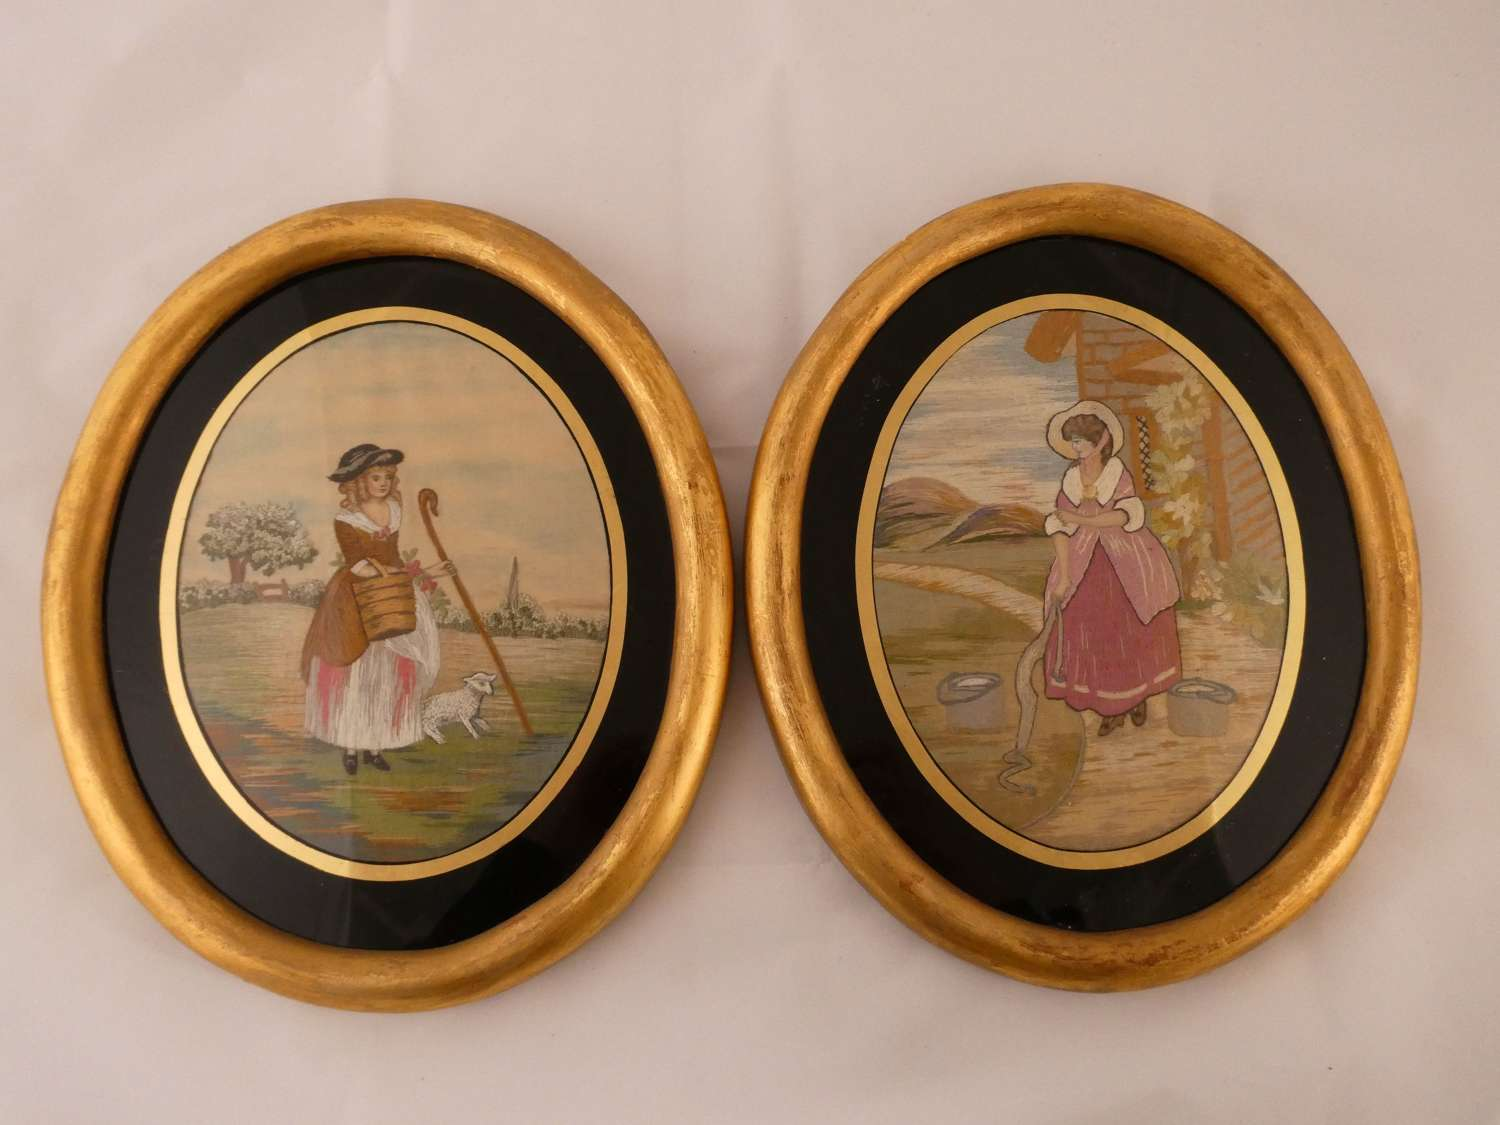 Pair of Silkwork Embroideries